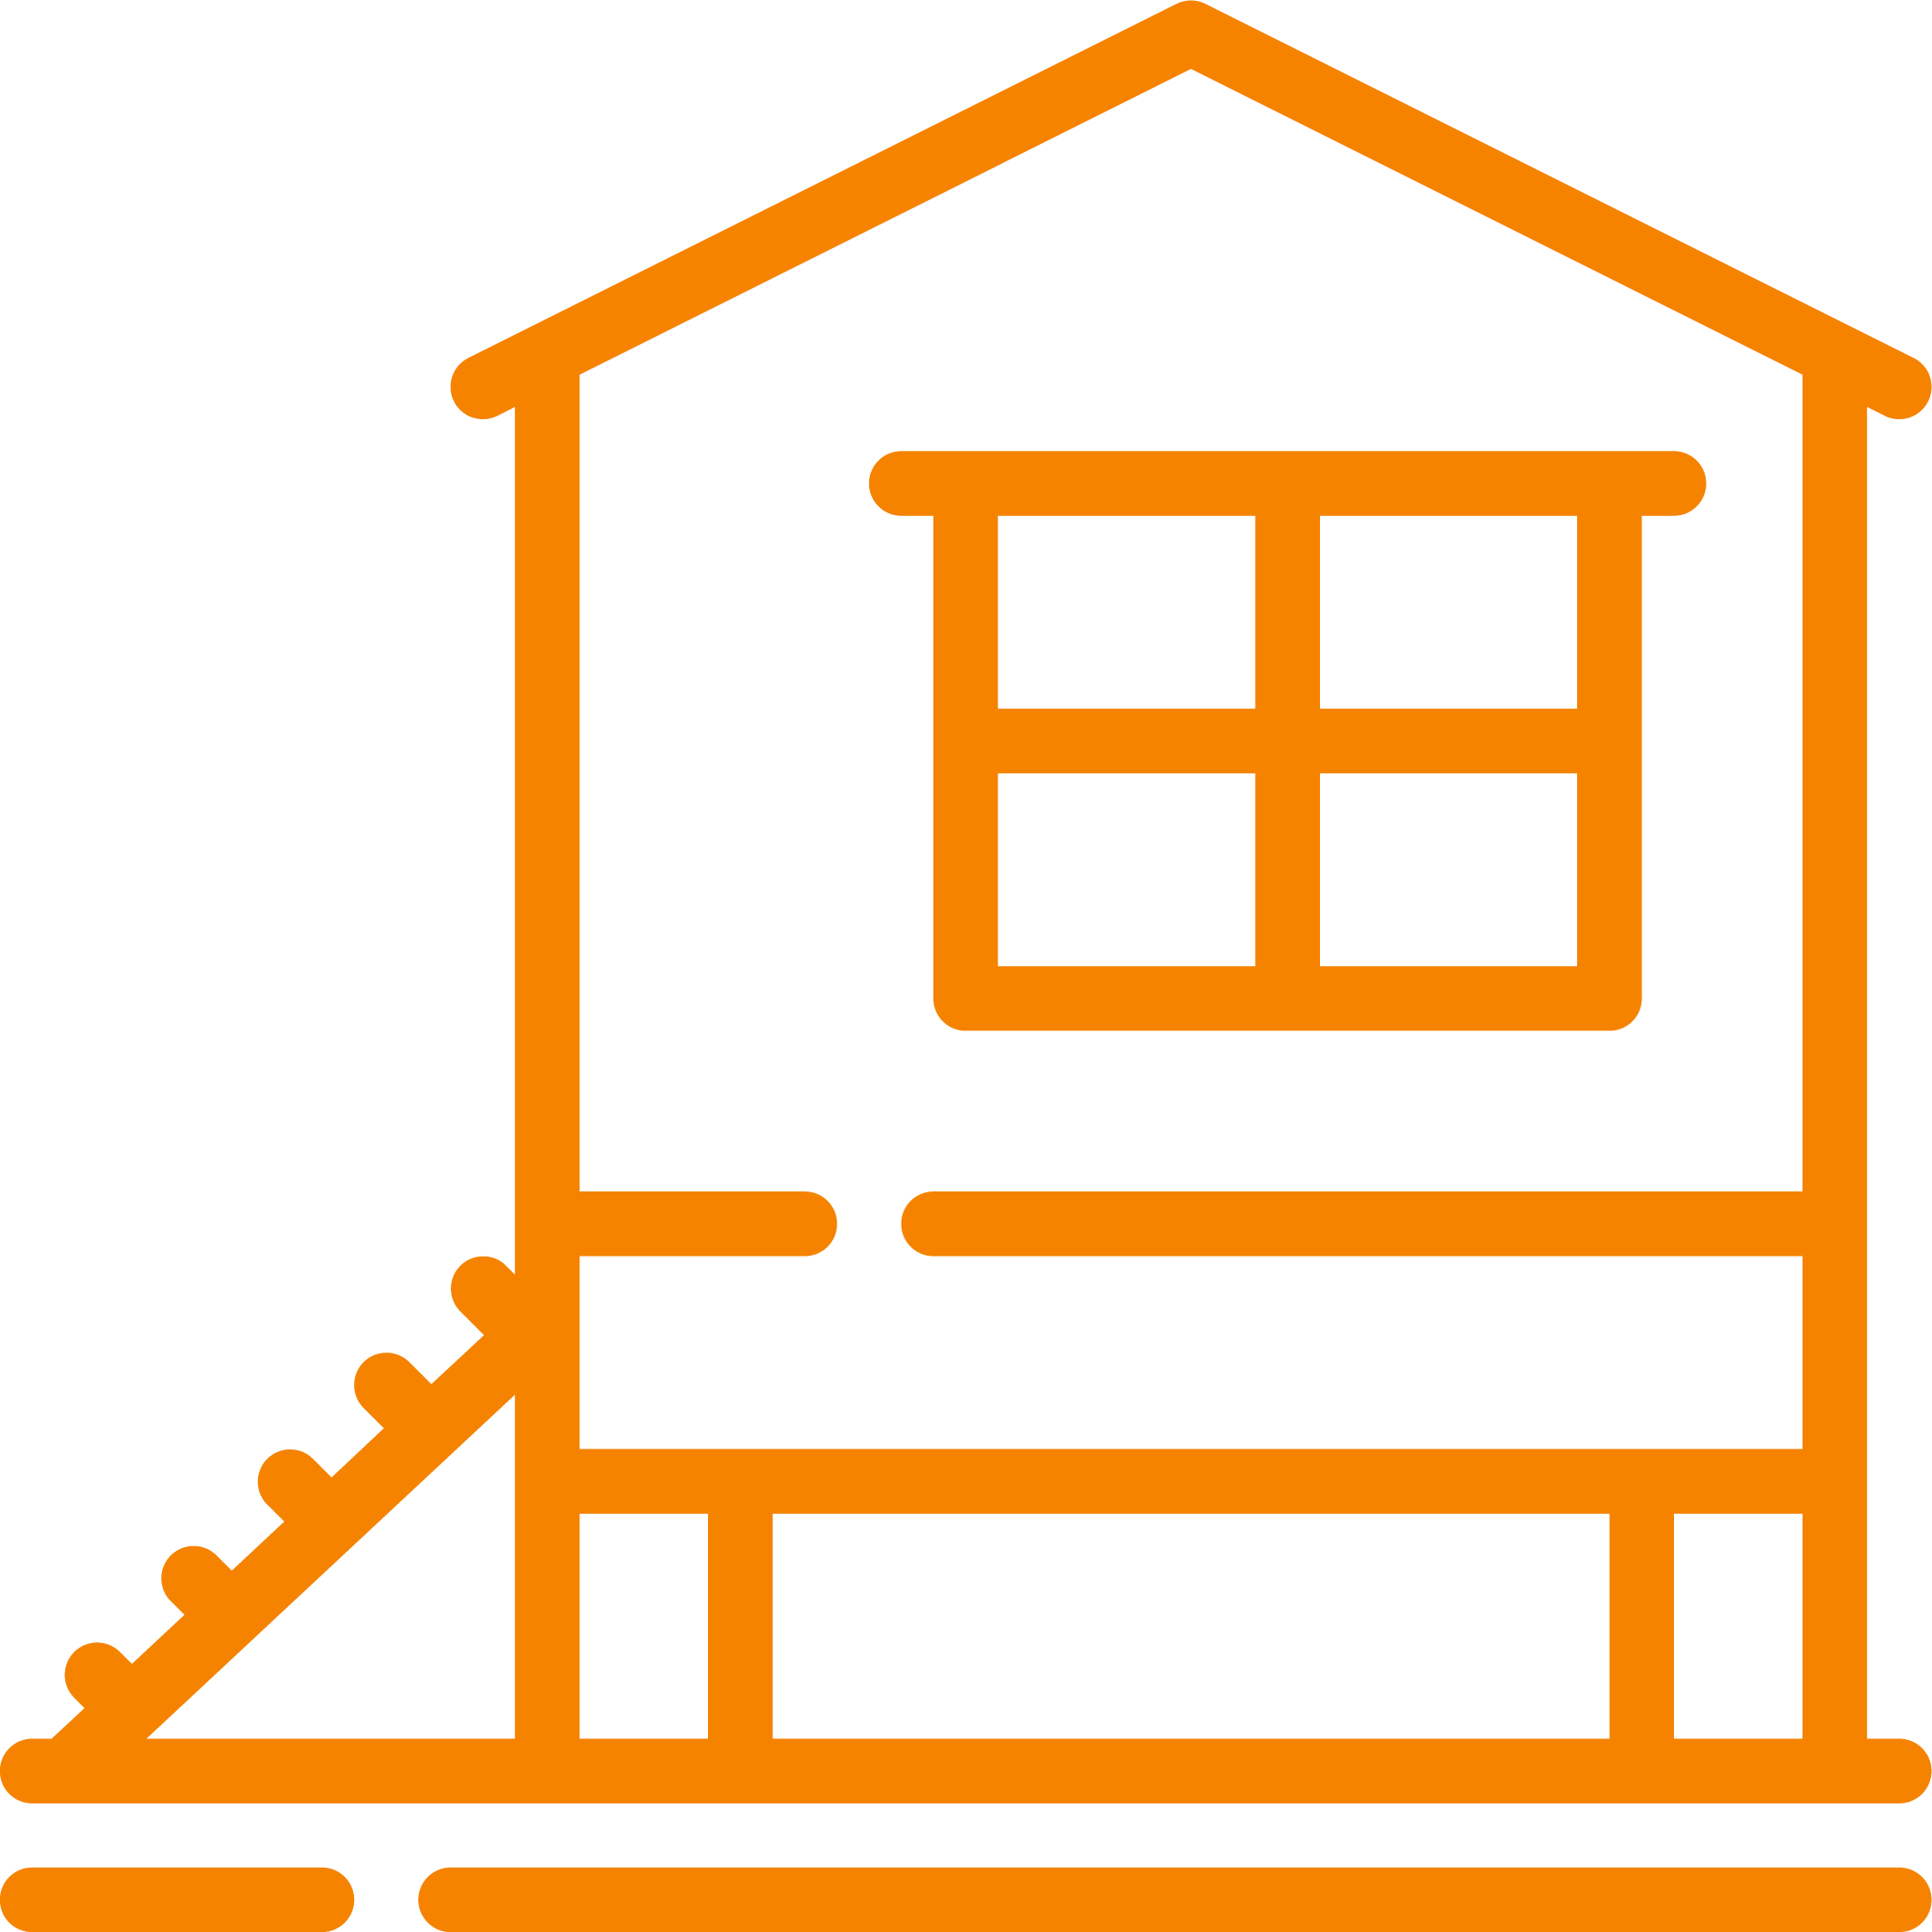 an elevated chicken coops icon